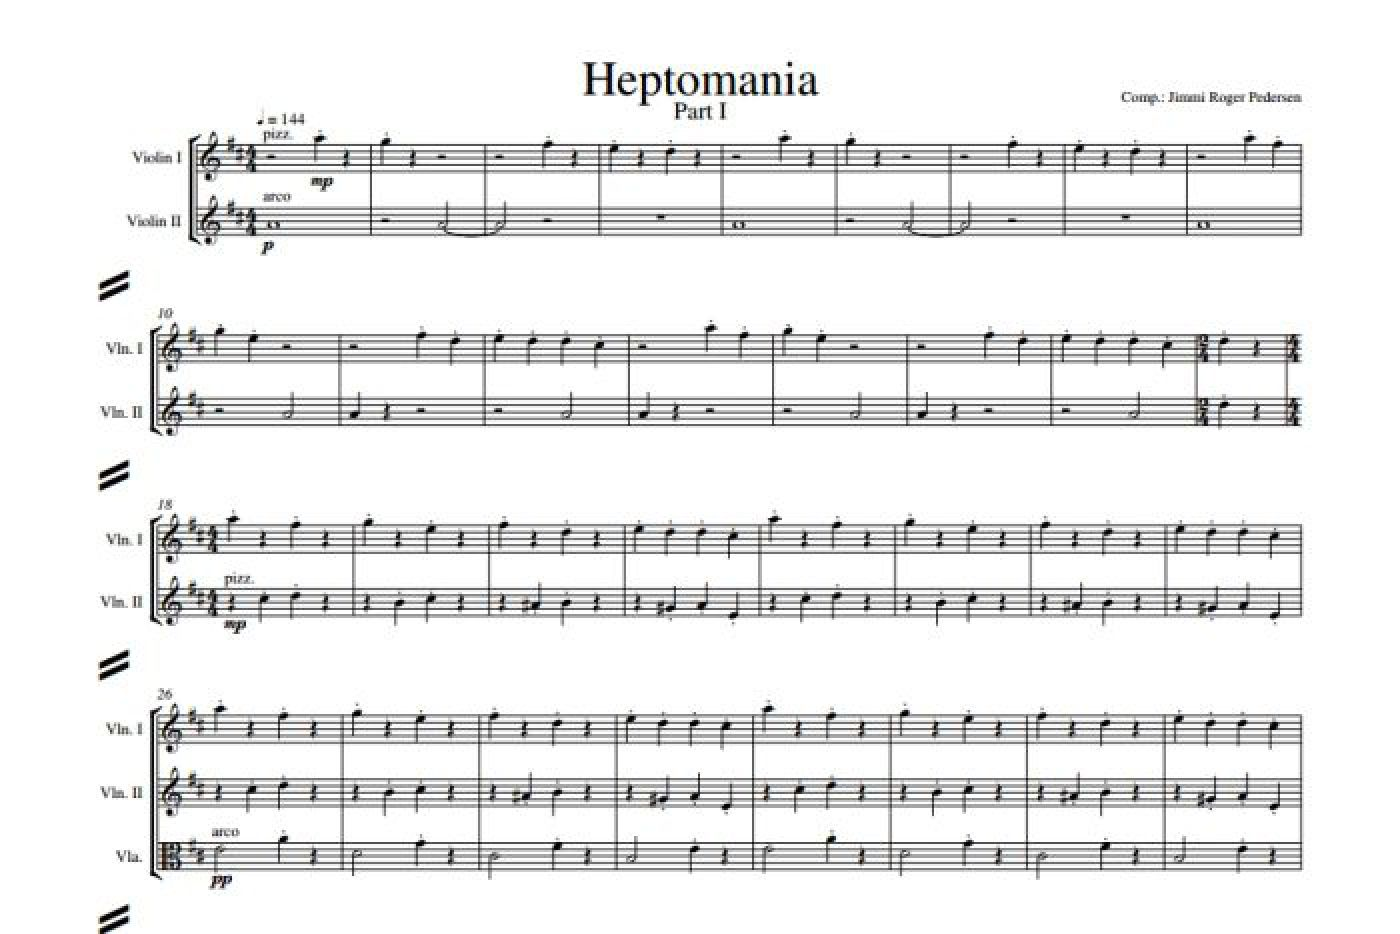 HEPTOMANIA